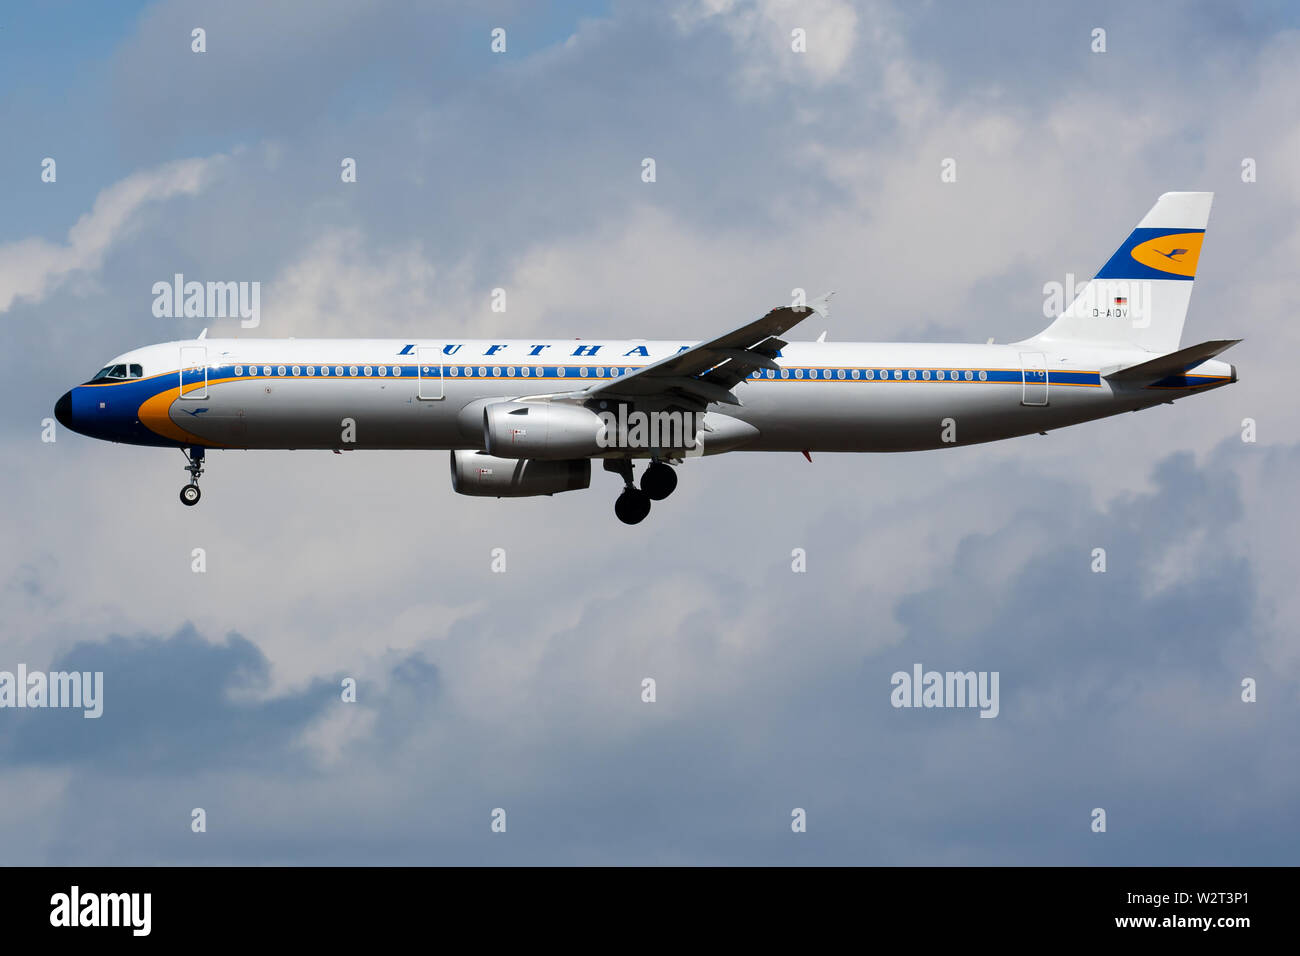 Retro Livery Stock Photos & Retro Livery Stock Images - Alamy